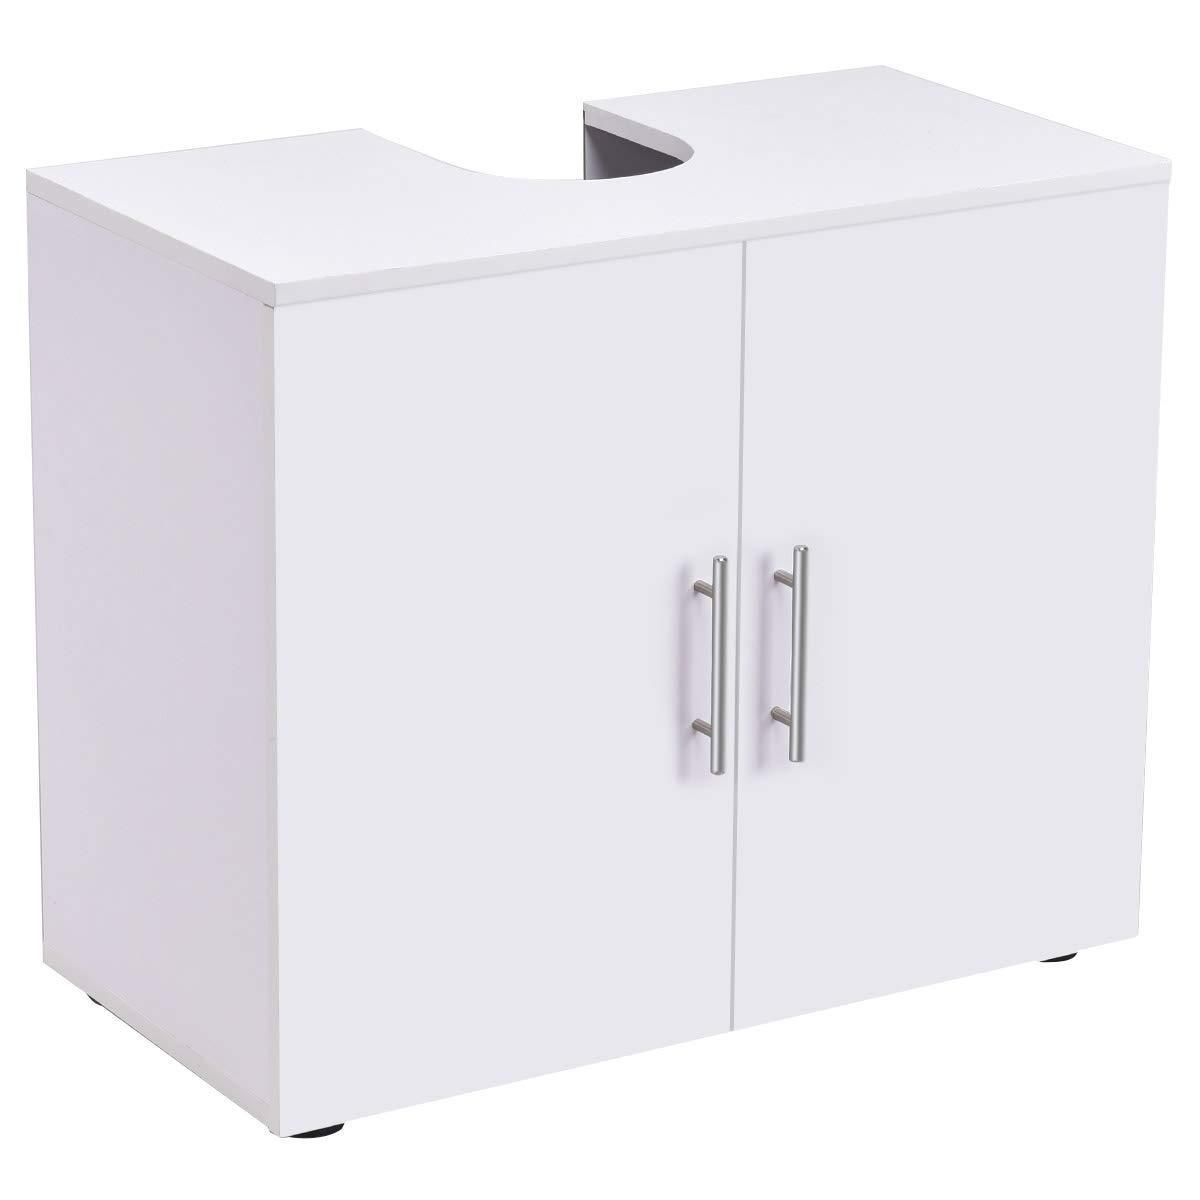 Featured bathroom non pedestal under sink vanity cabinet multipurpose freestanding space saver storage organizer double doors with shelves white